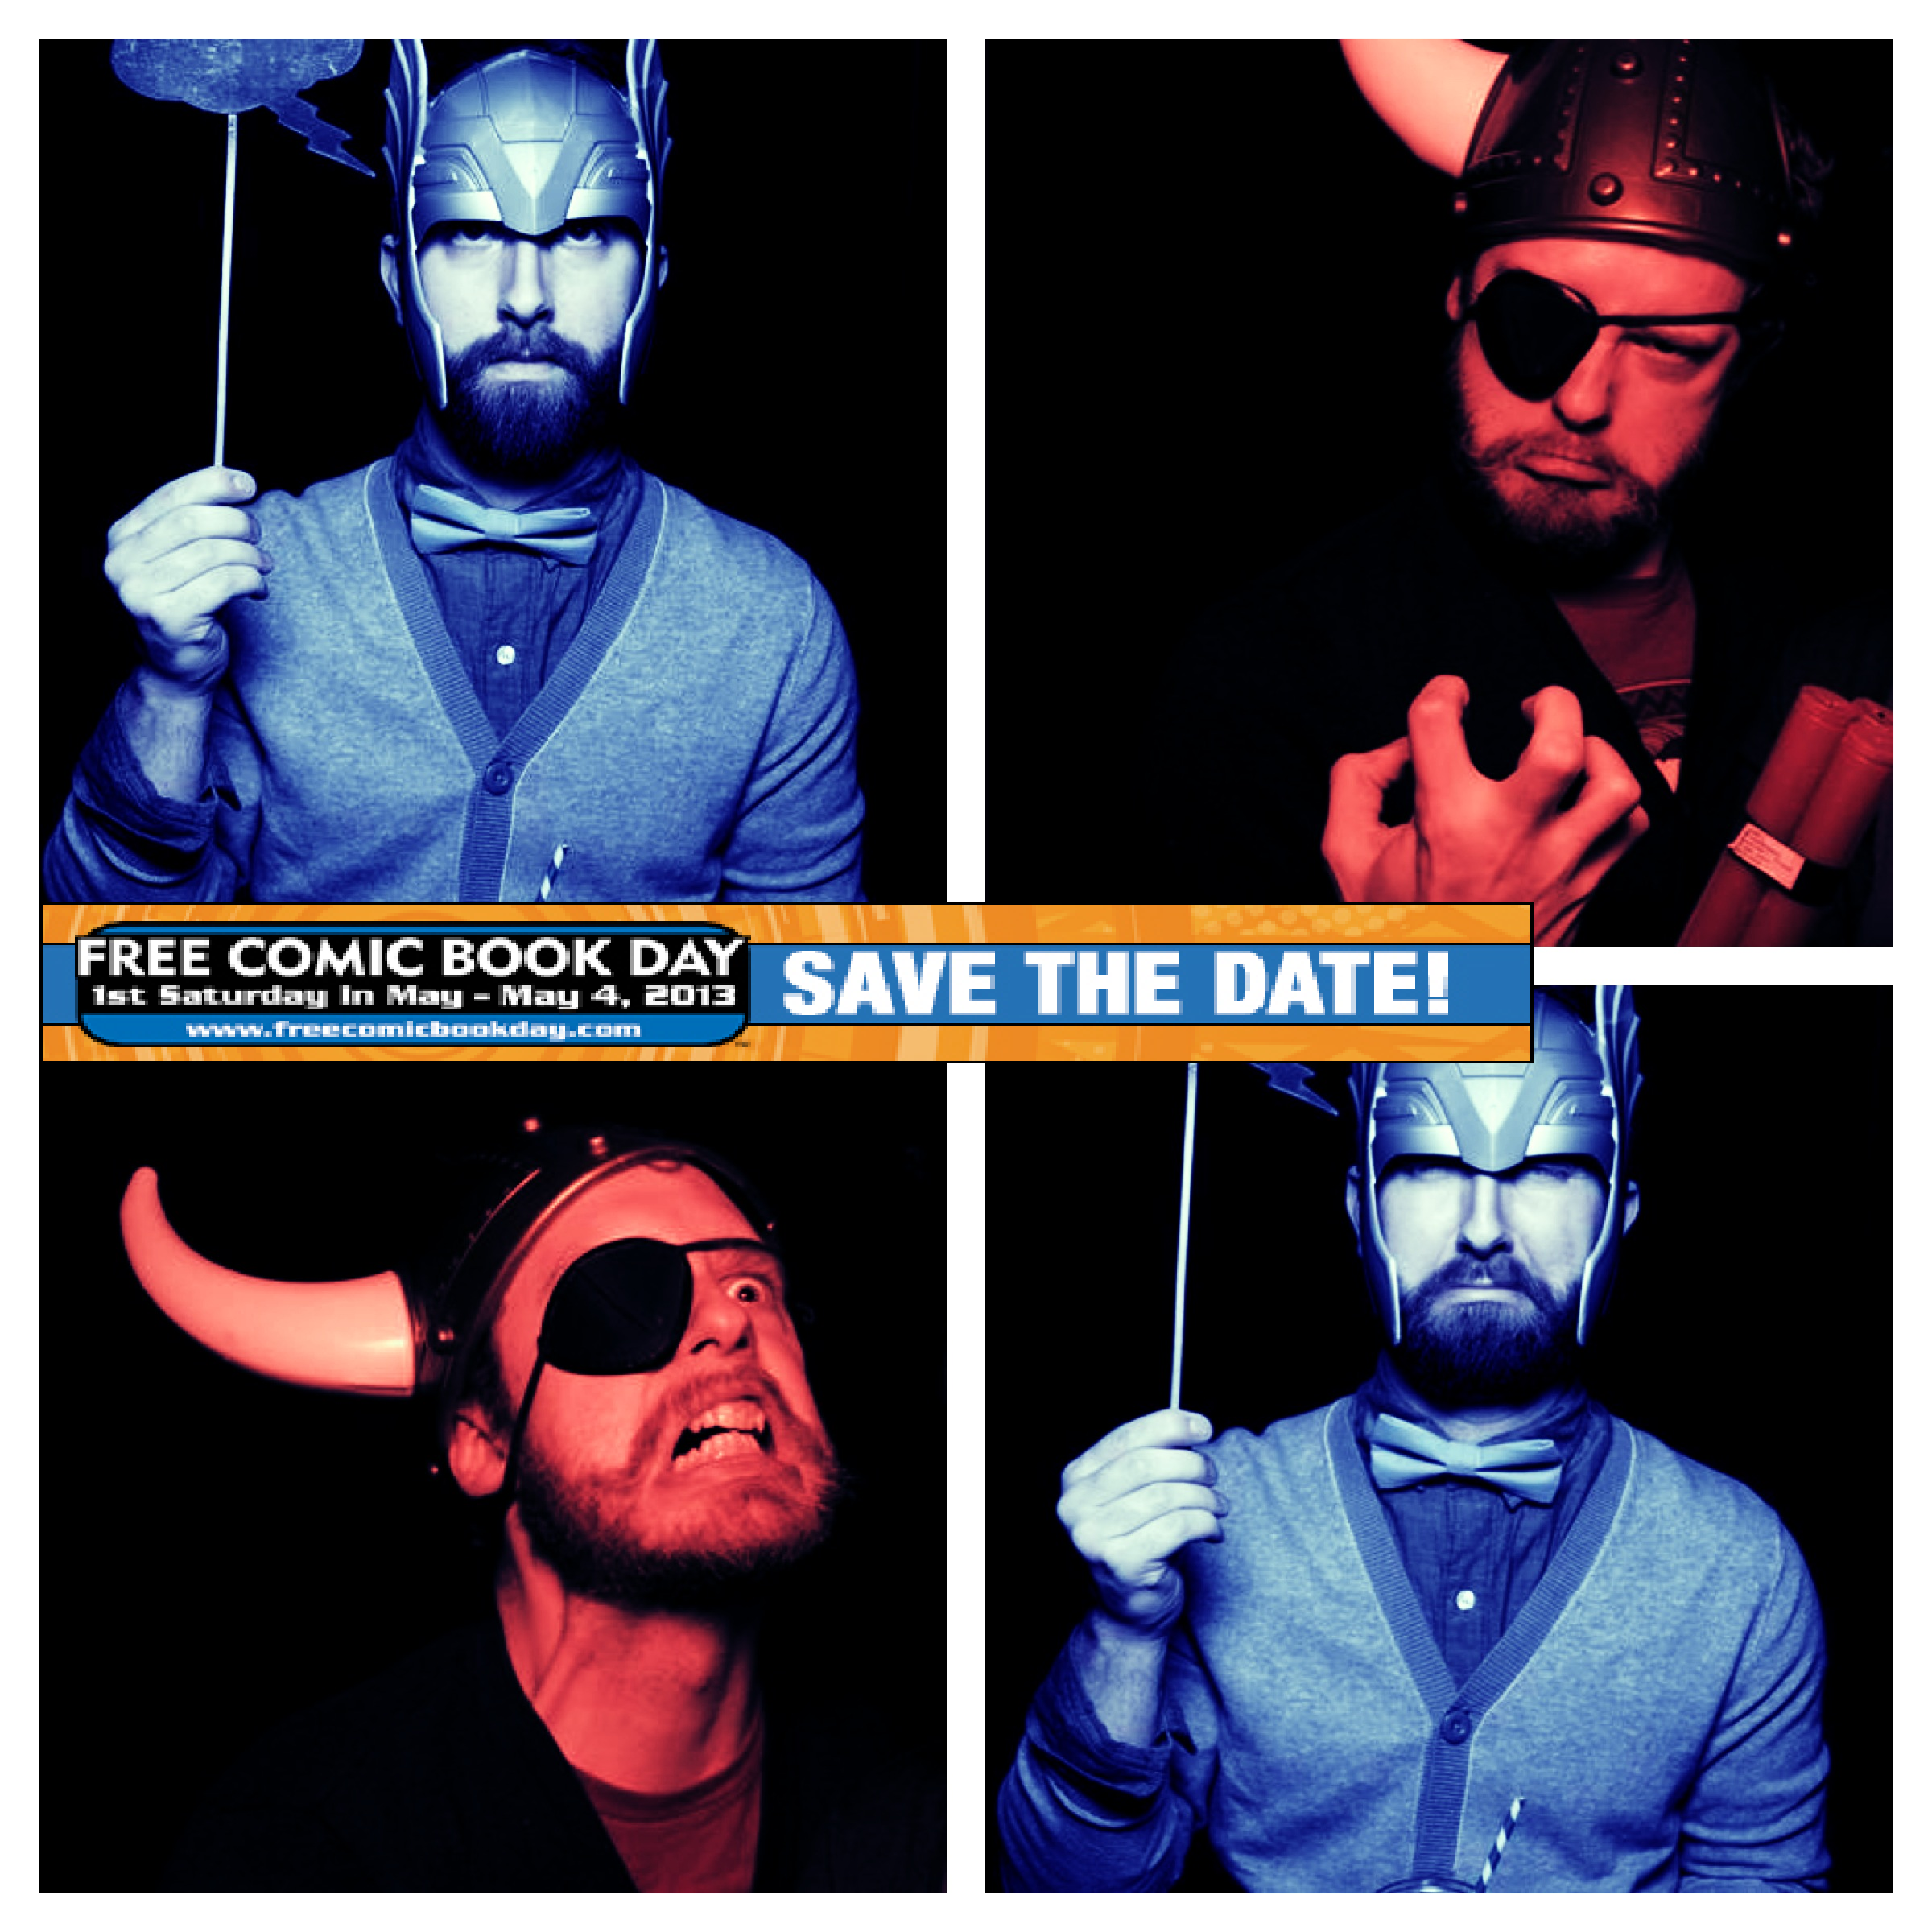 FCBD 2013 - With Date.png